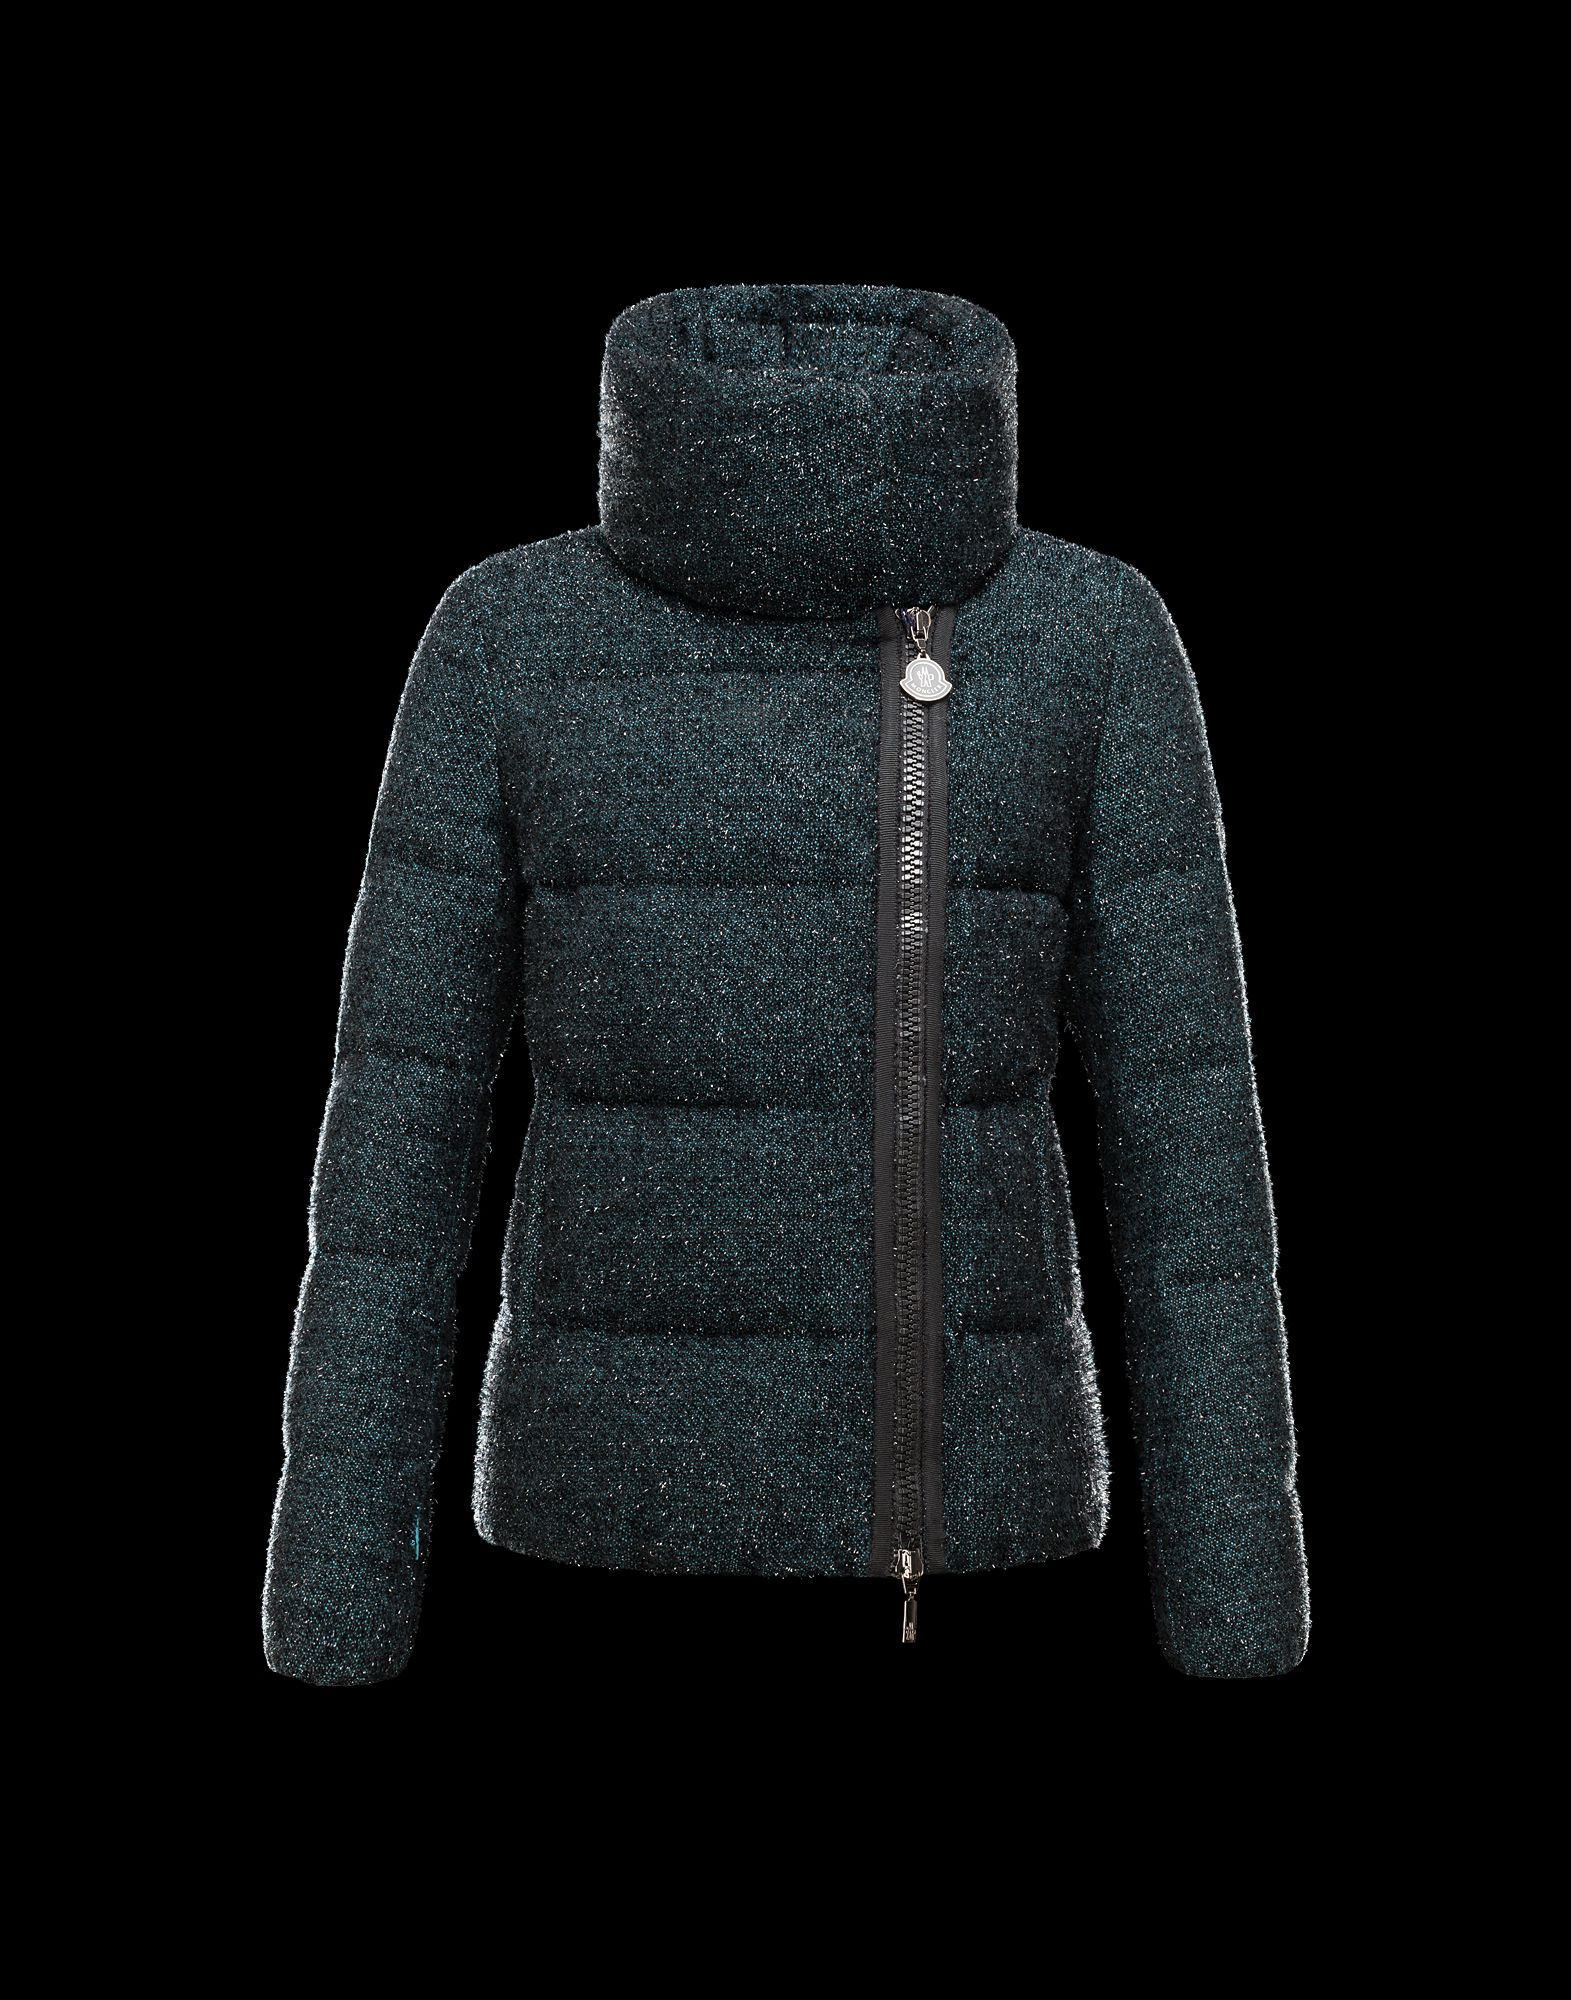 Jacket Women Moncler - Original products on store.moncler.com rocher